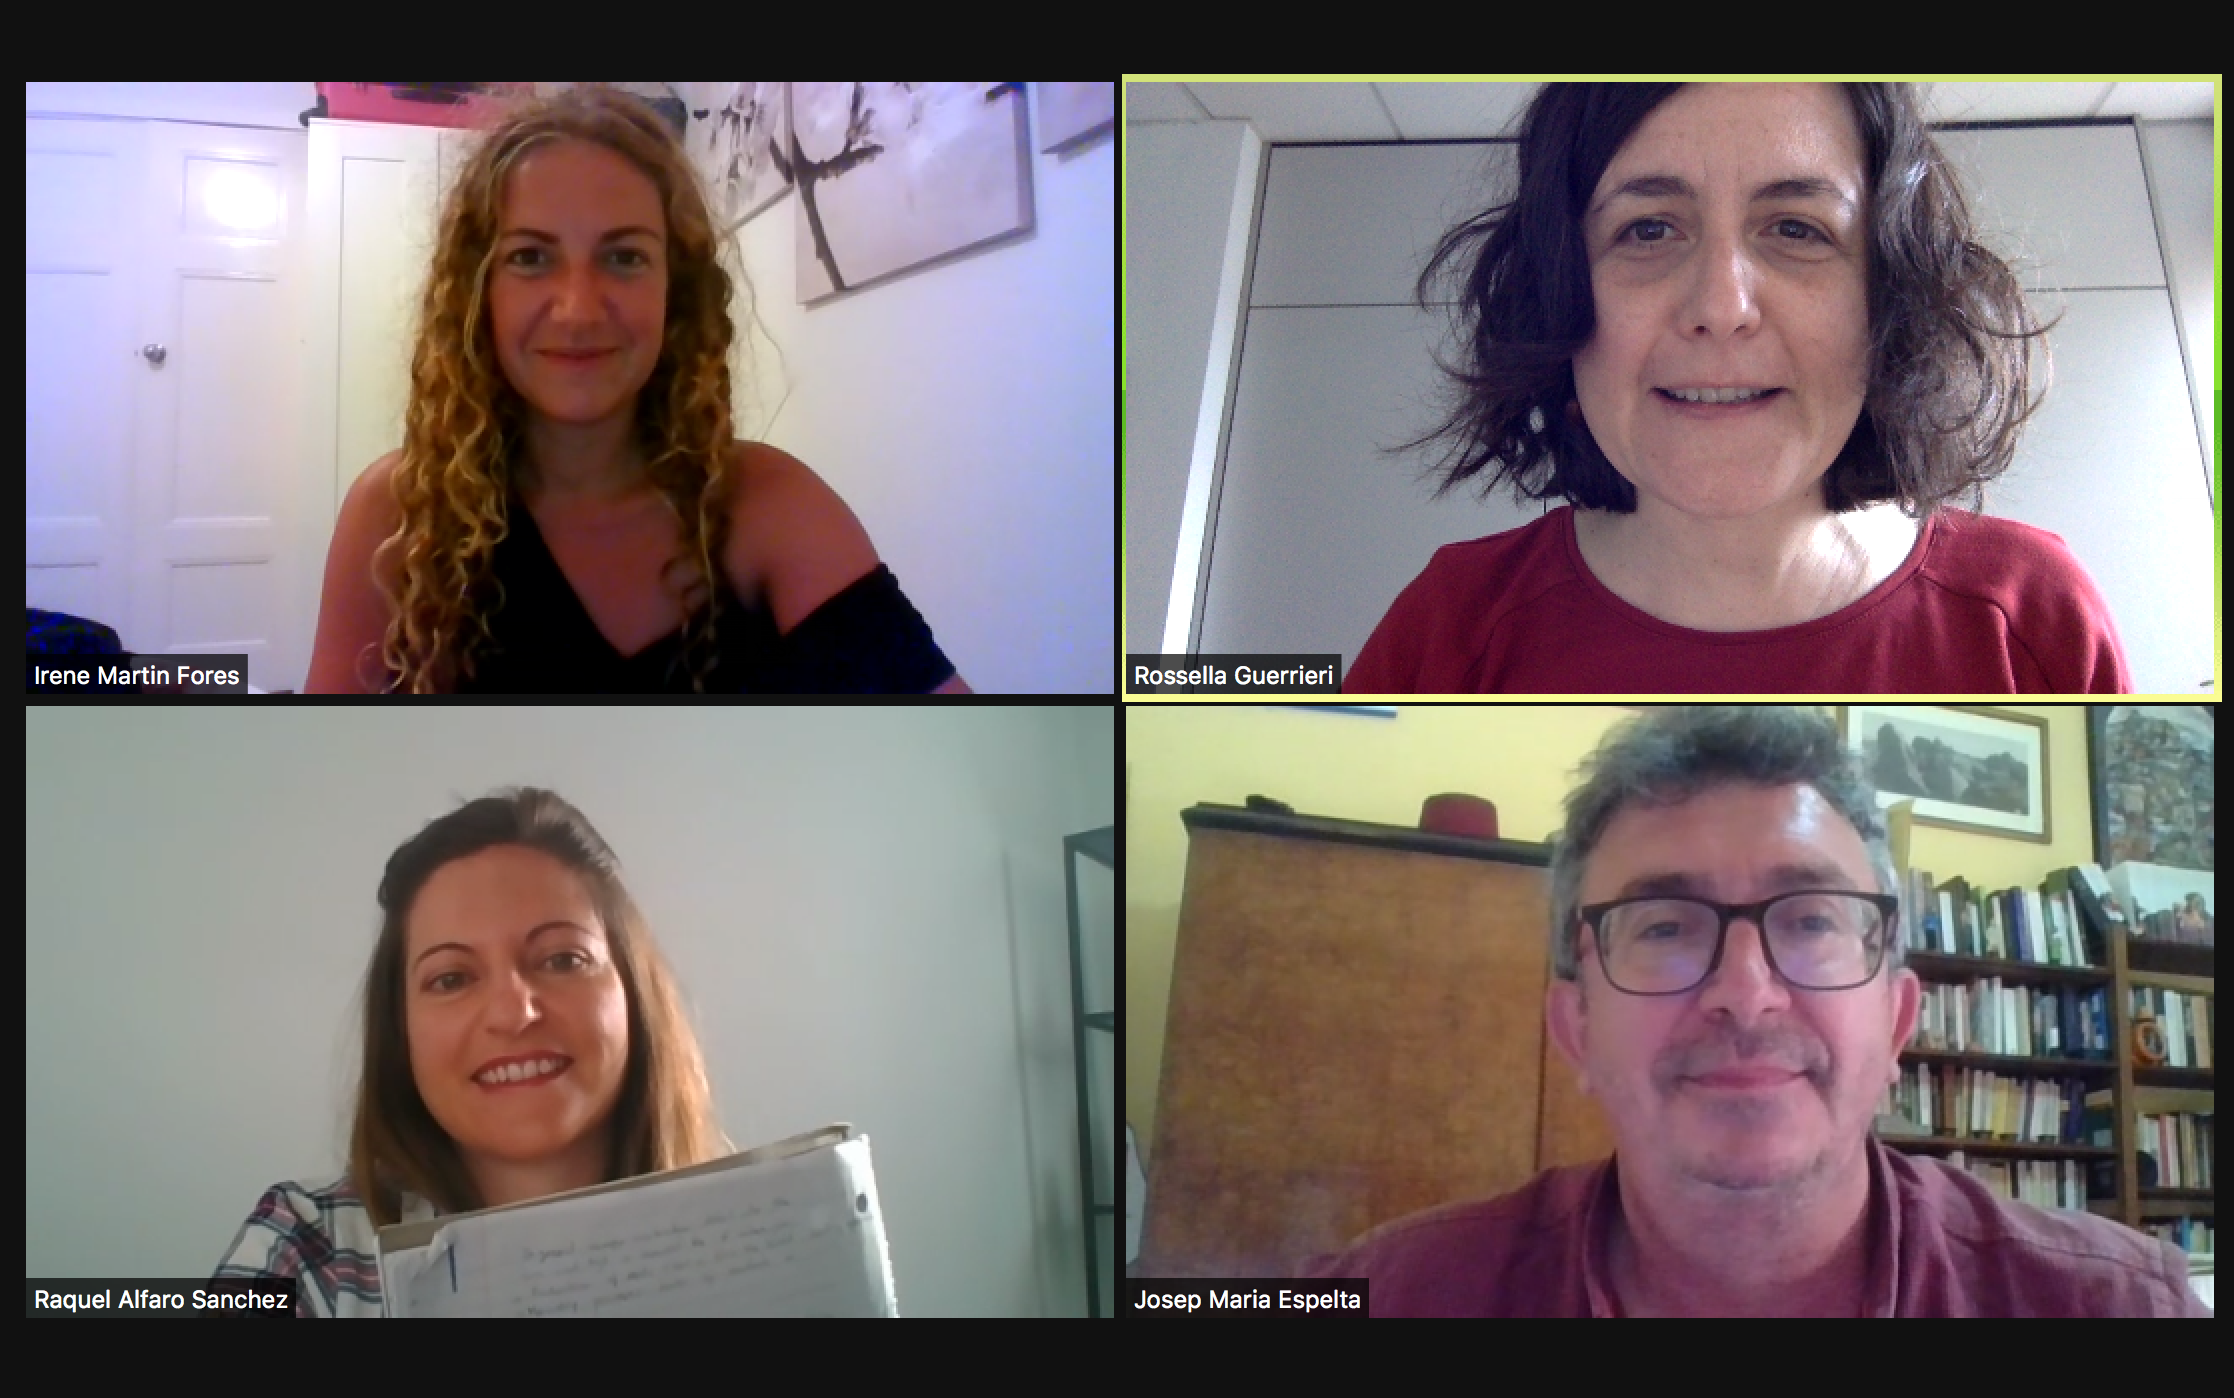 A virtual meeting between co-authors